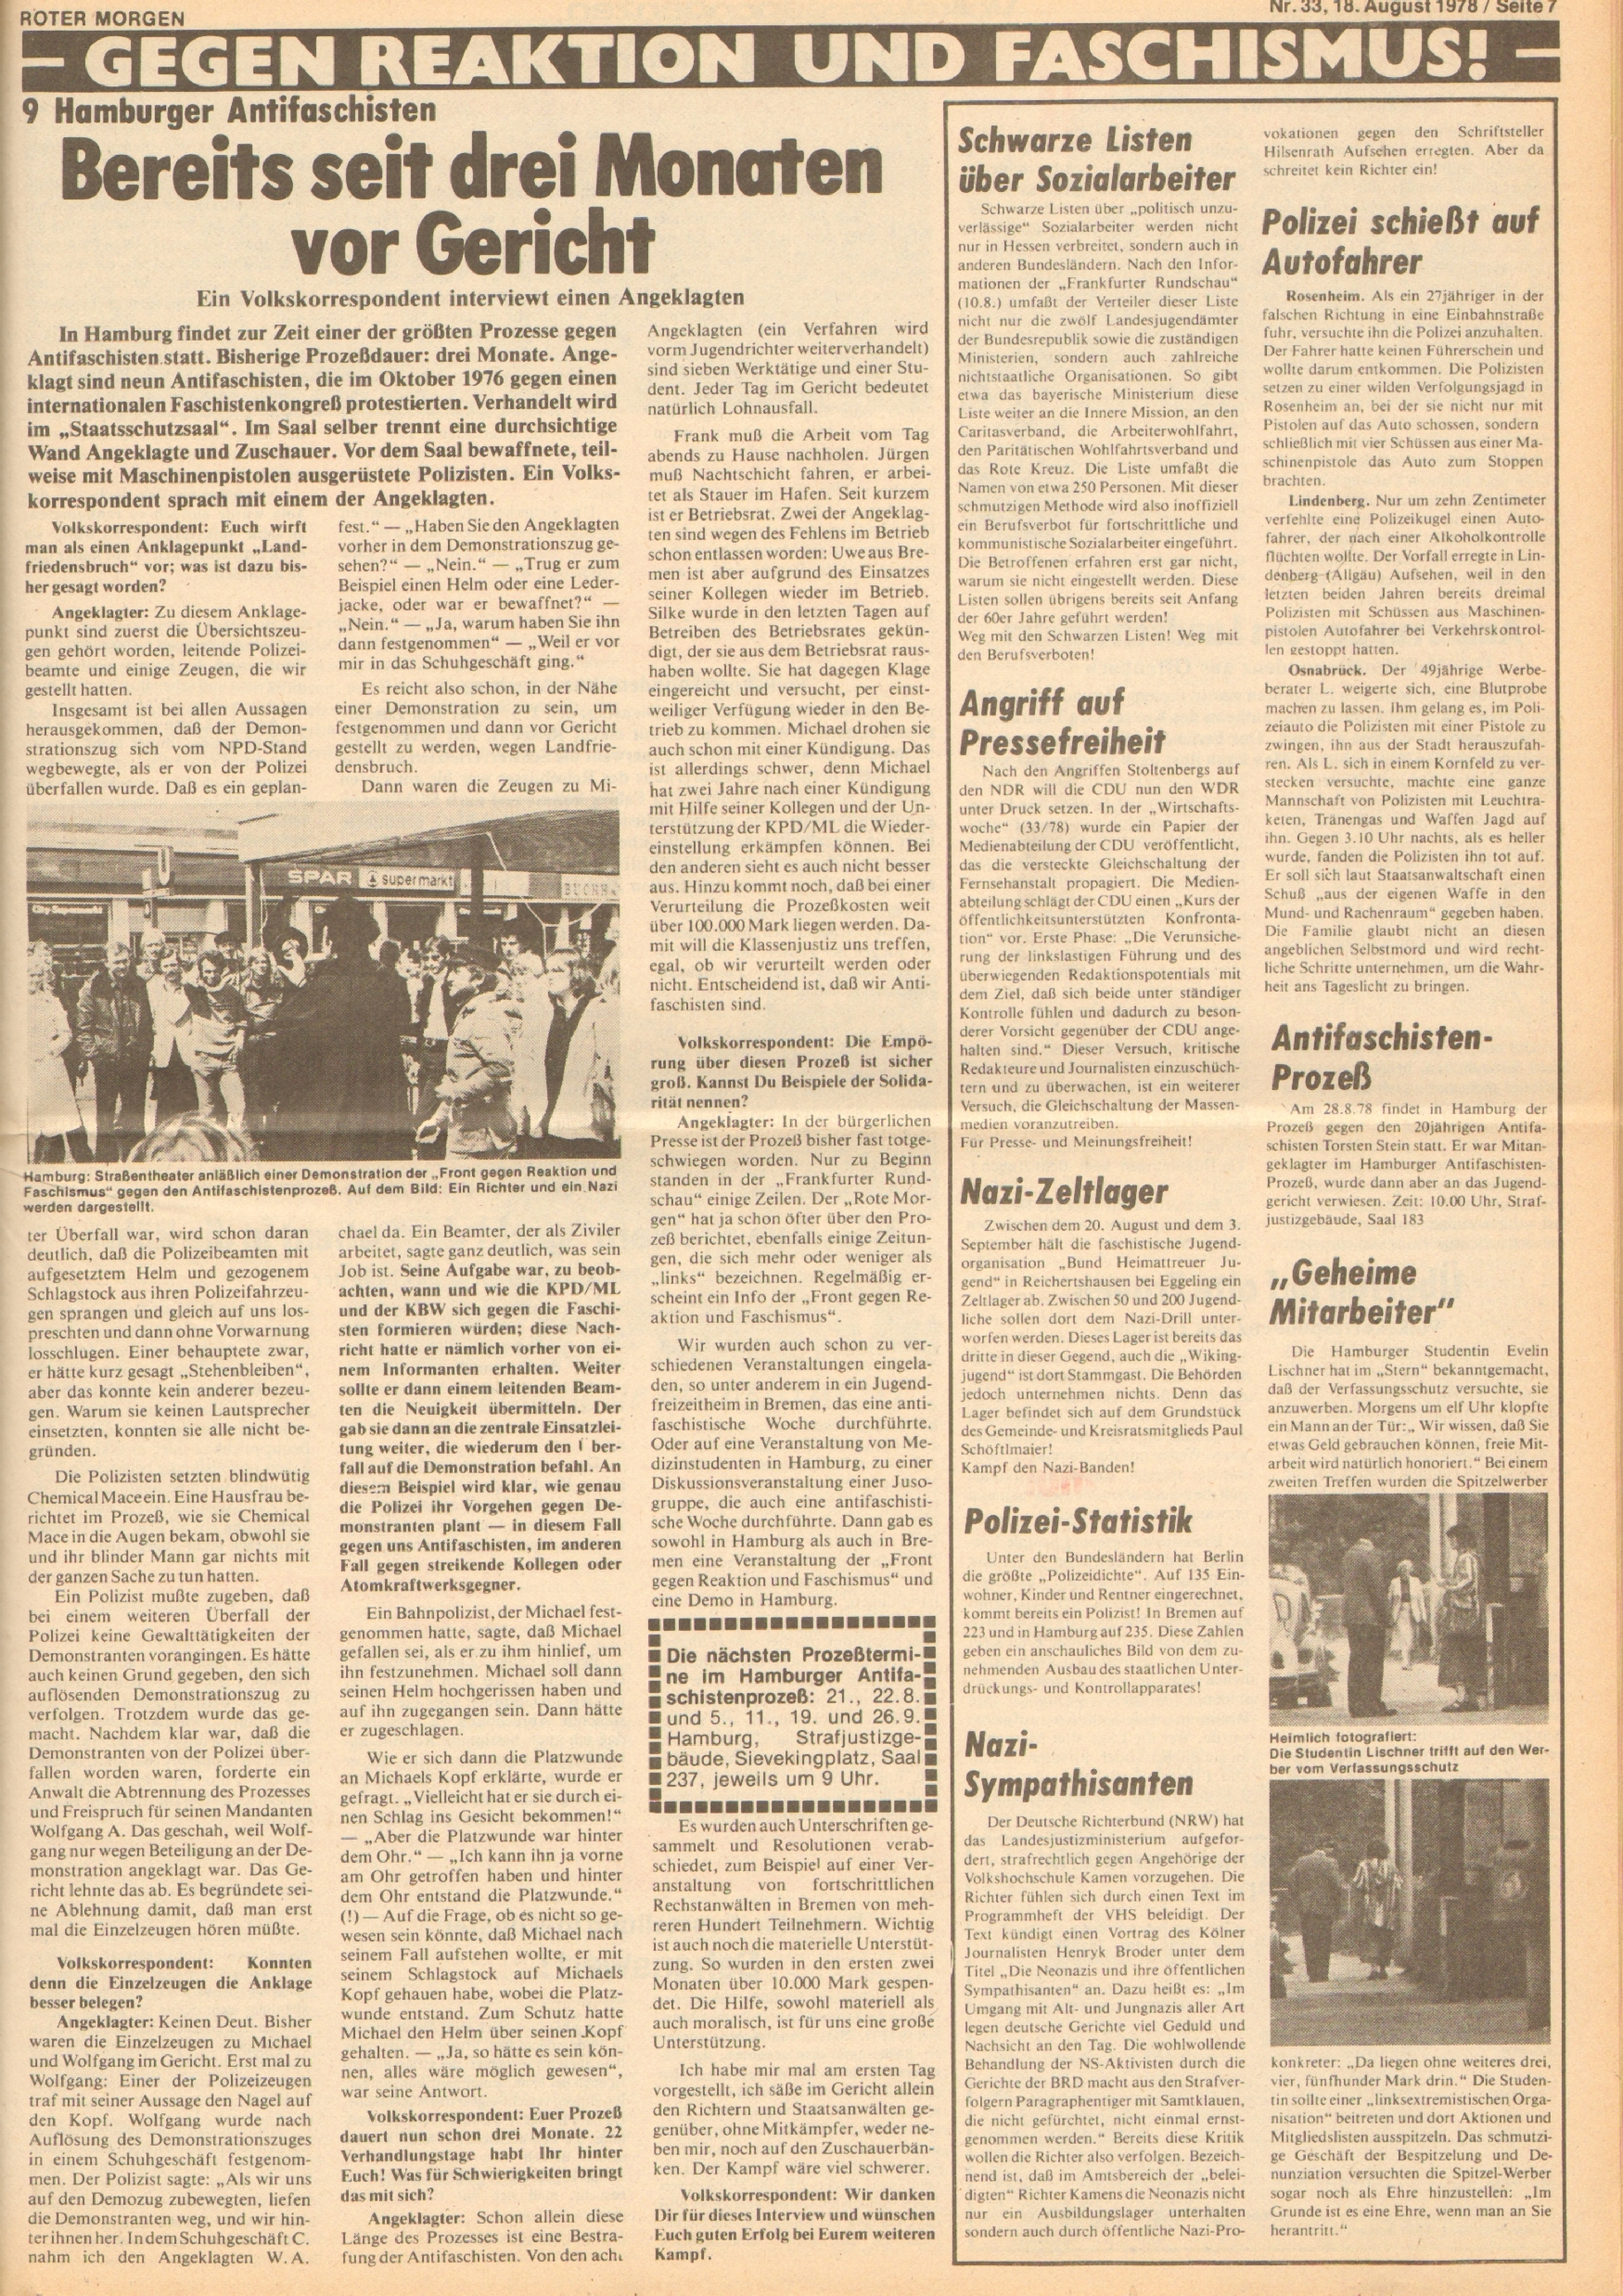 Roter Morgen, 12. Jg., 18. August 1978, Nr. 33, Seite 7